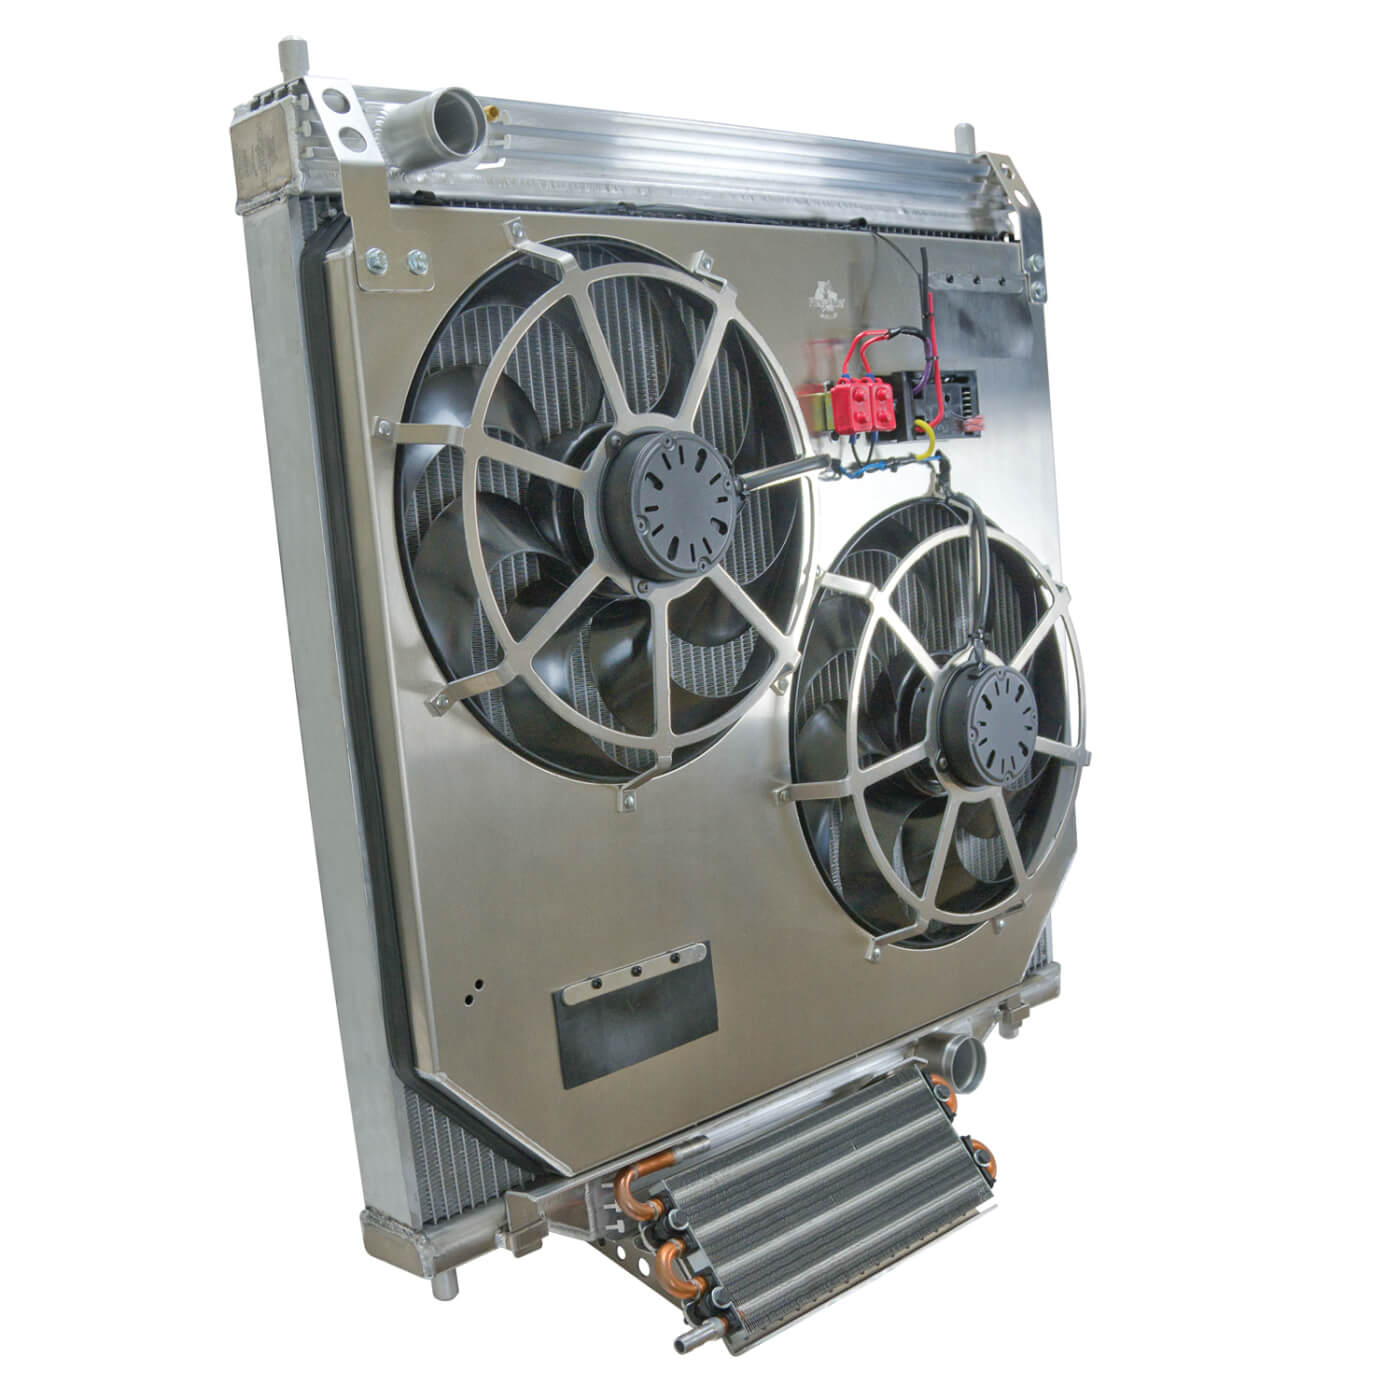 Flex-a-lite Aluminum Radiator and Dual-electric Fan System